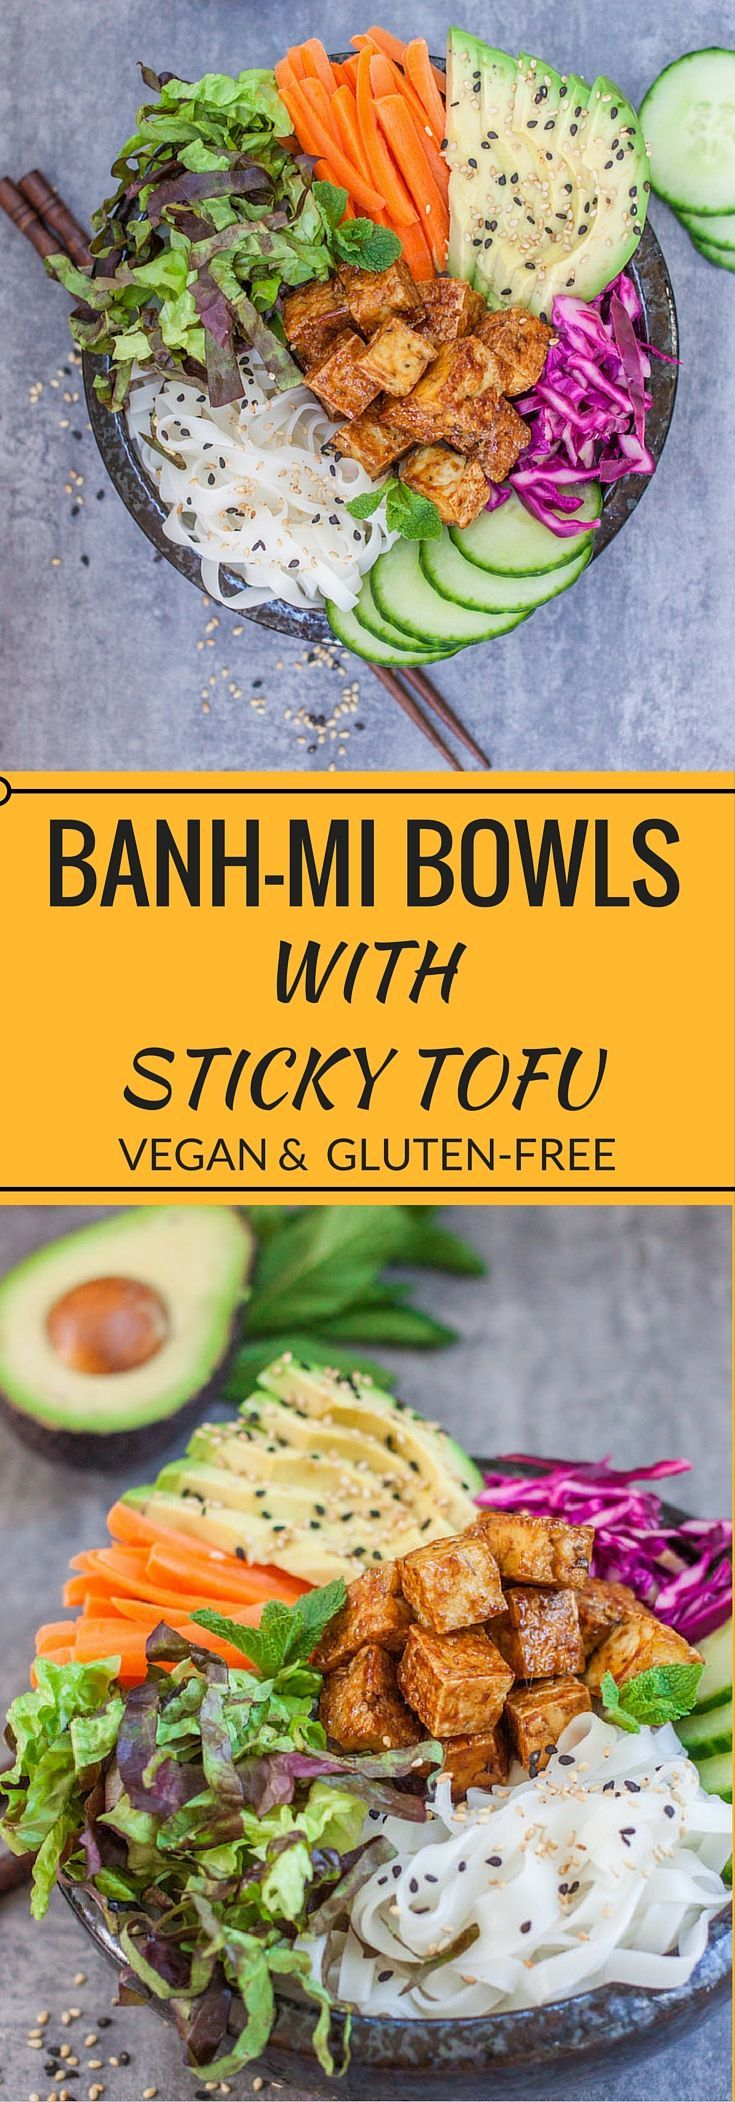 Banh mi bowls with sticky tofu #vegan #bio #mangersain #healthy